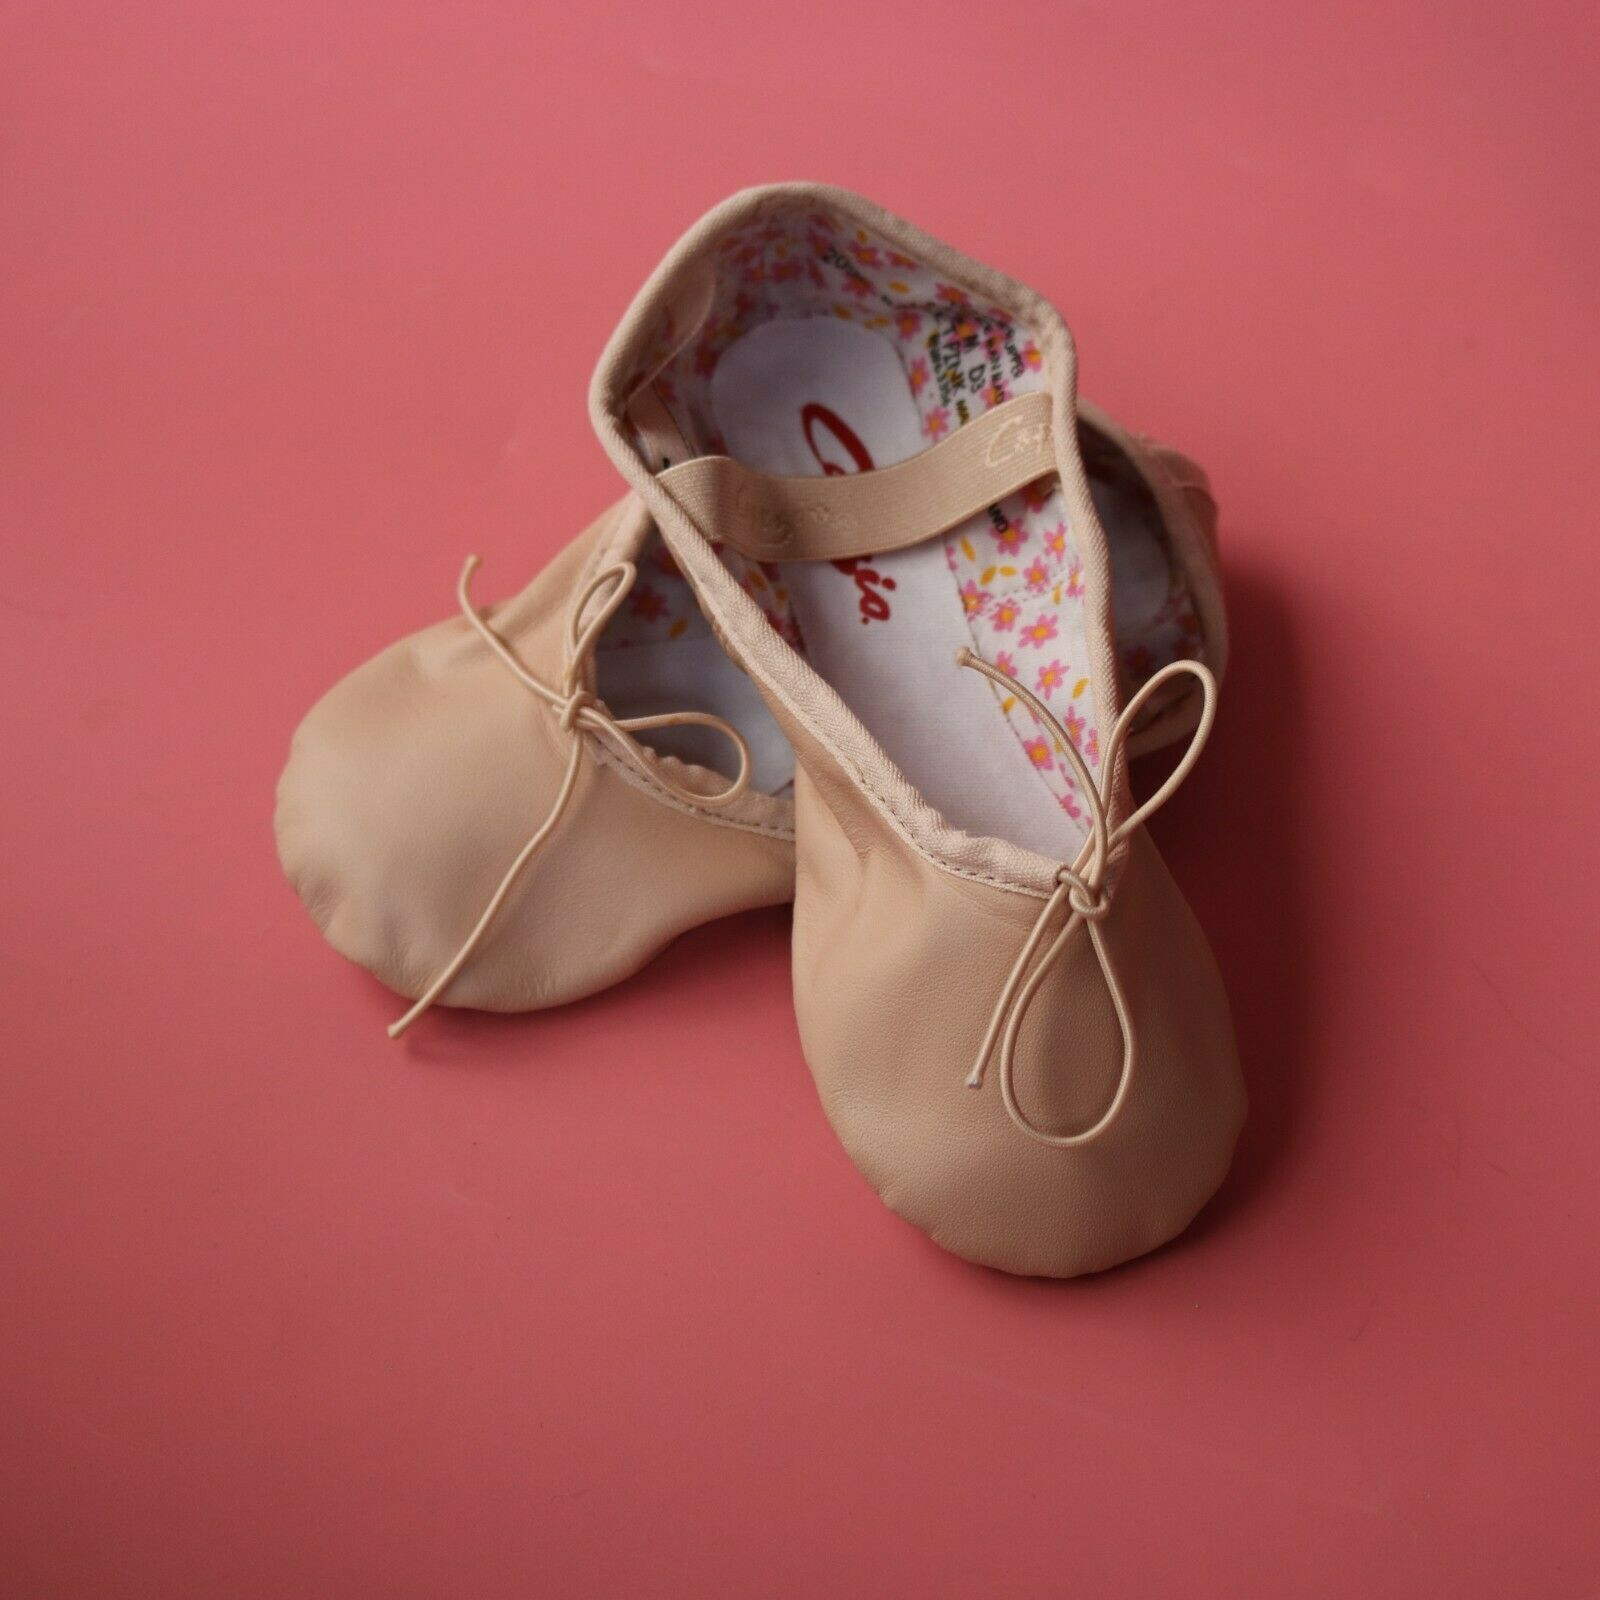 Capezio DAISY 205 NARROW Ballet Shoes Pink Leather NEW Various Sizes